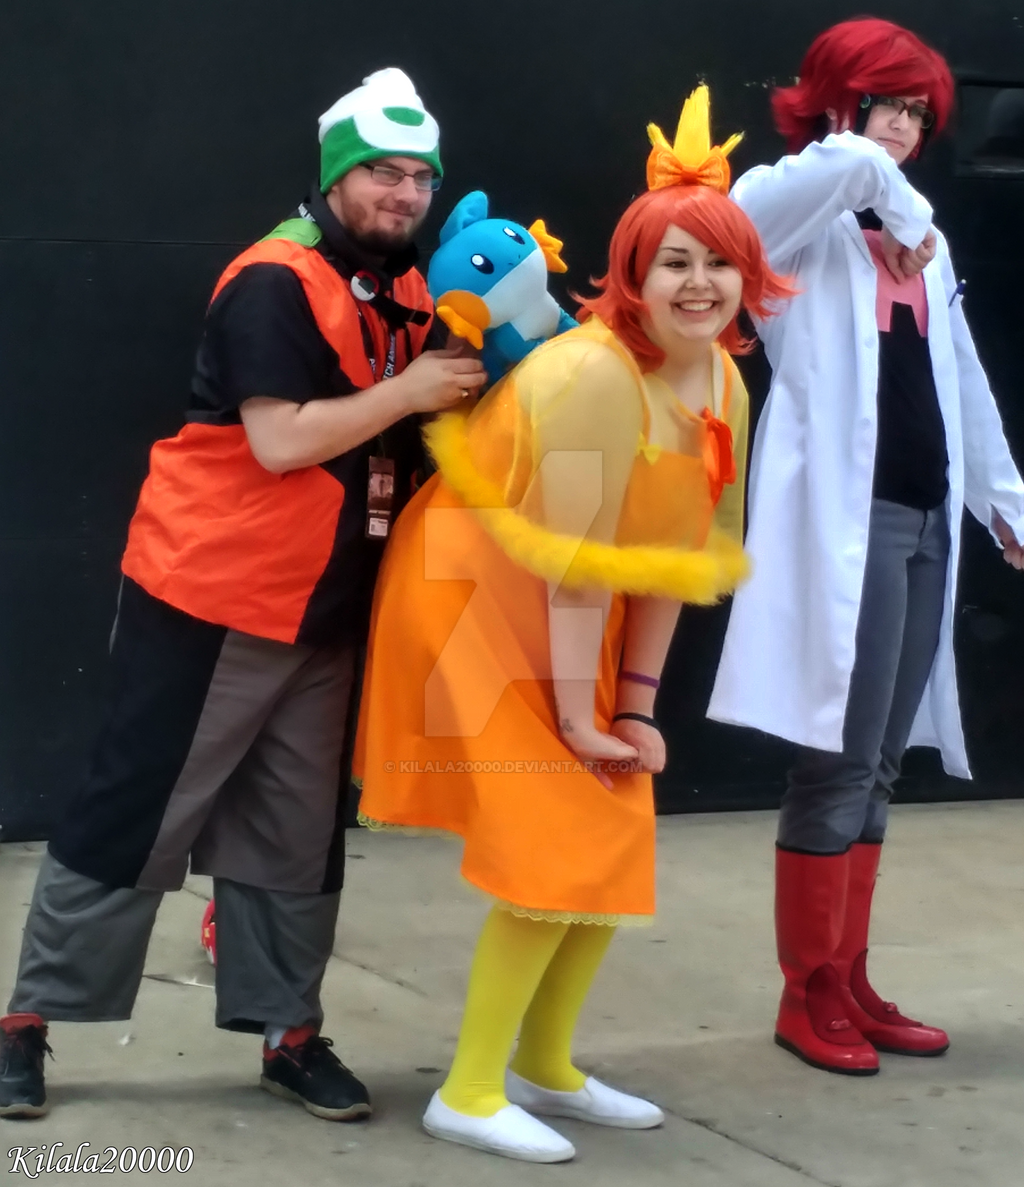 Anime Midwest 2019: Anime Midwest 2017 (36) By Kilala20000 On DeviantArt